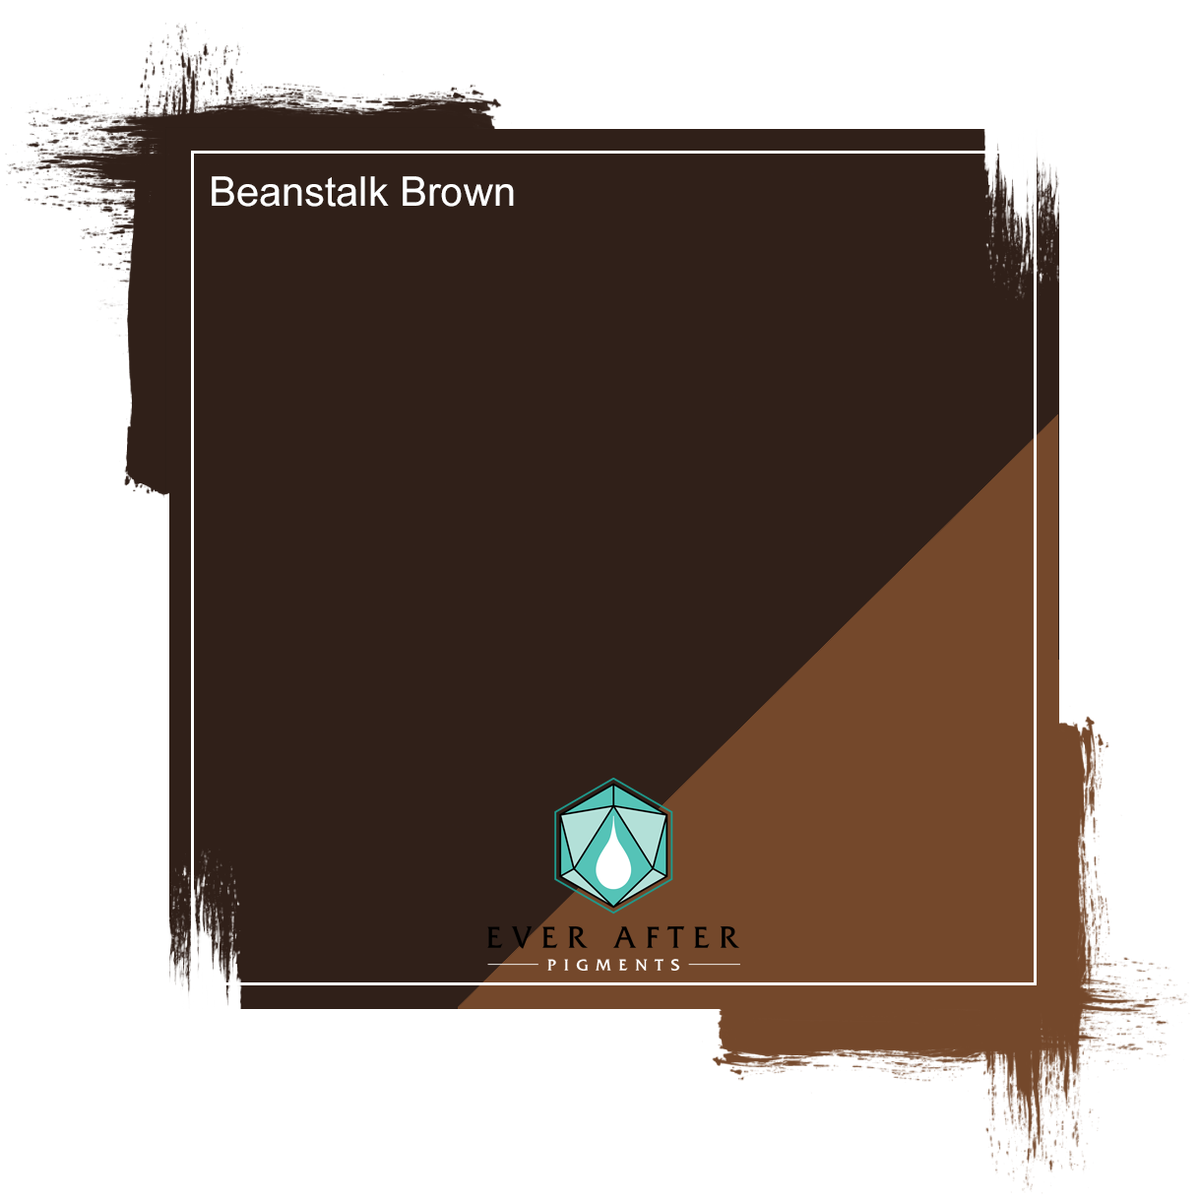 Beanstalk Brown